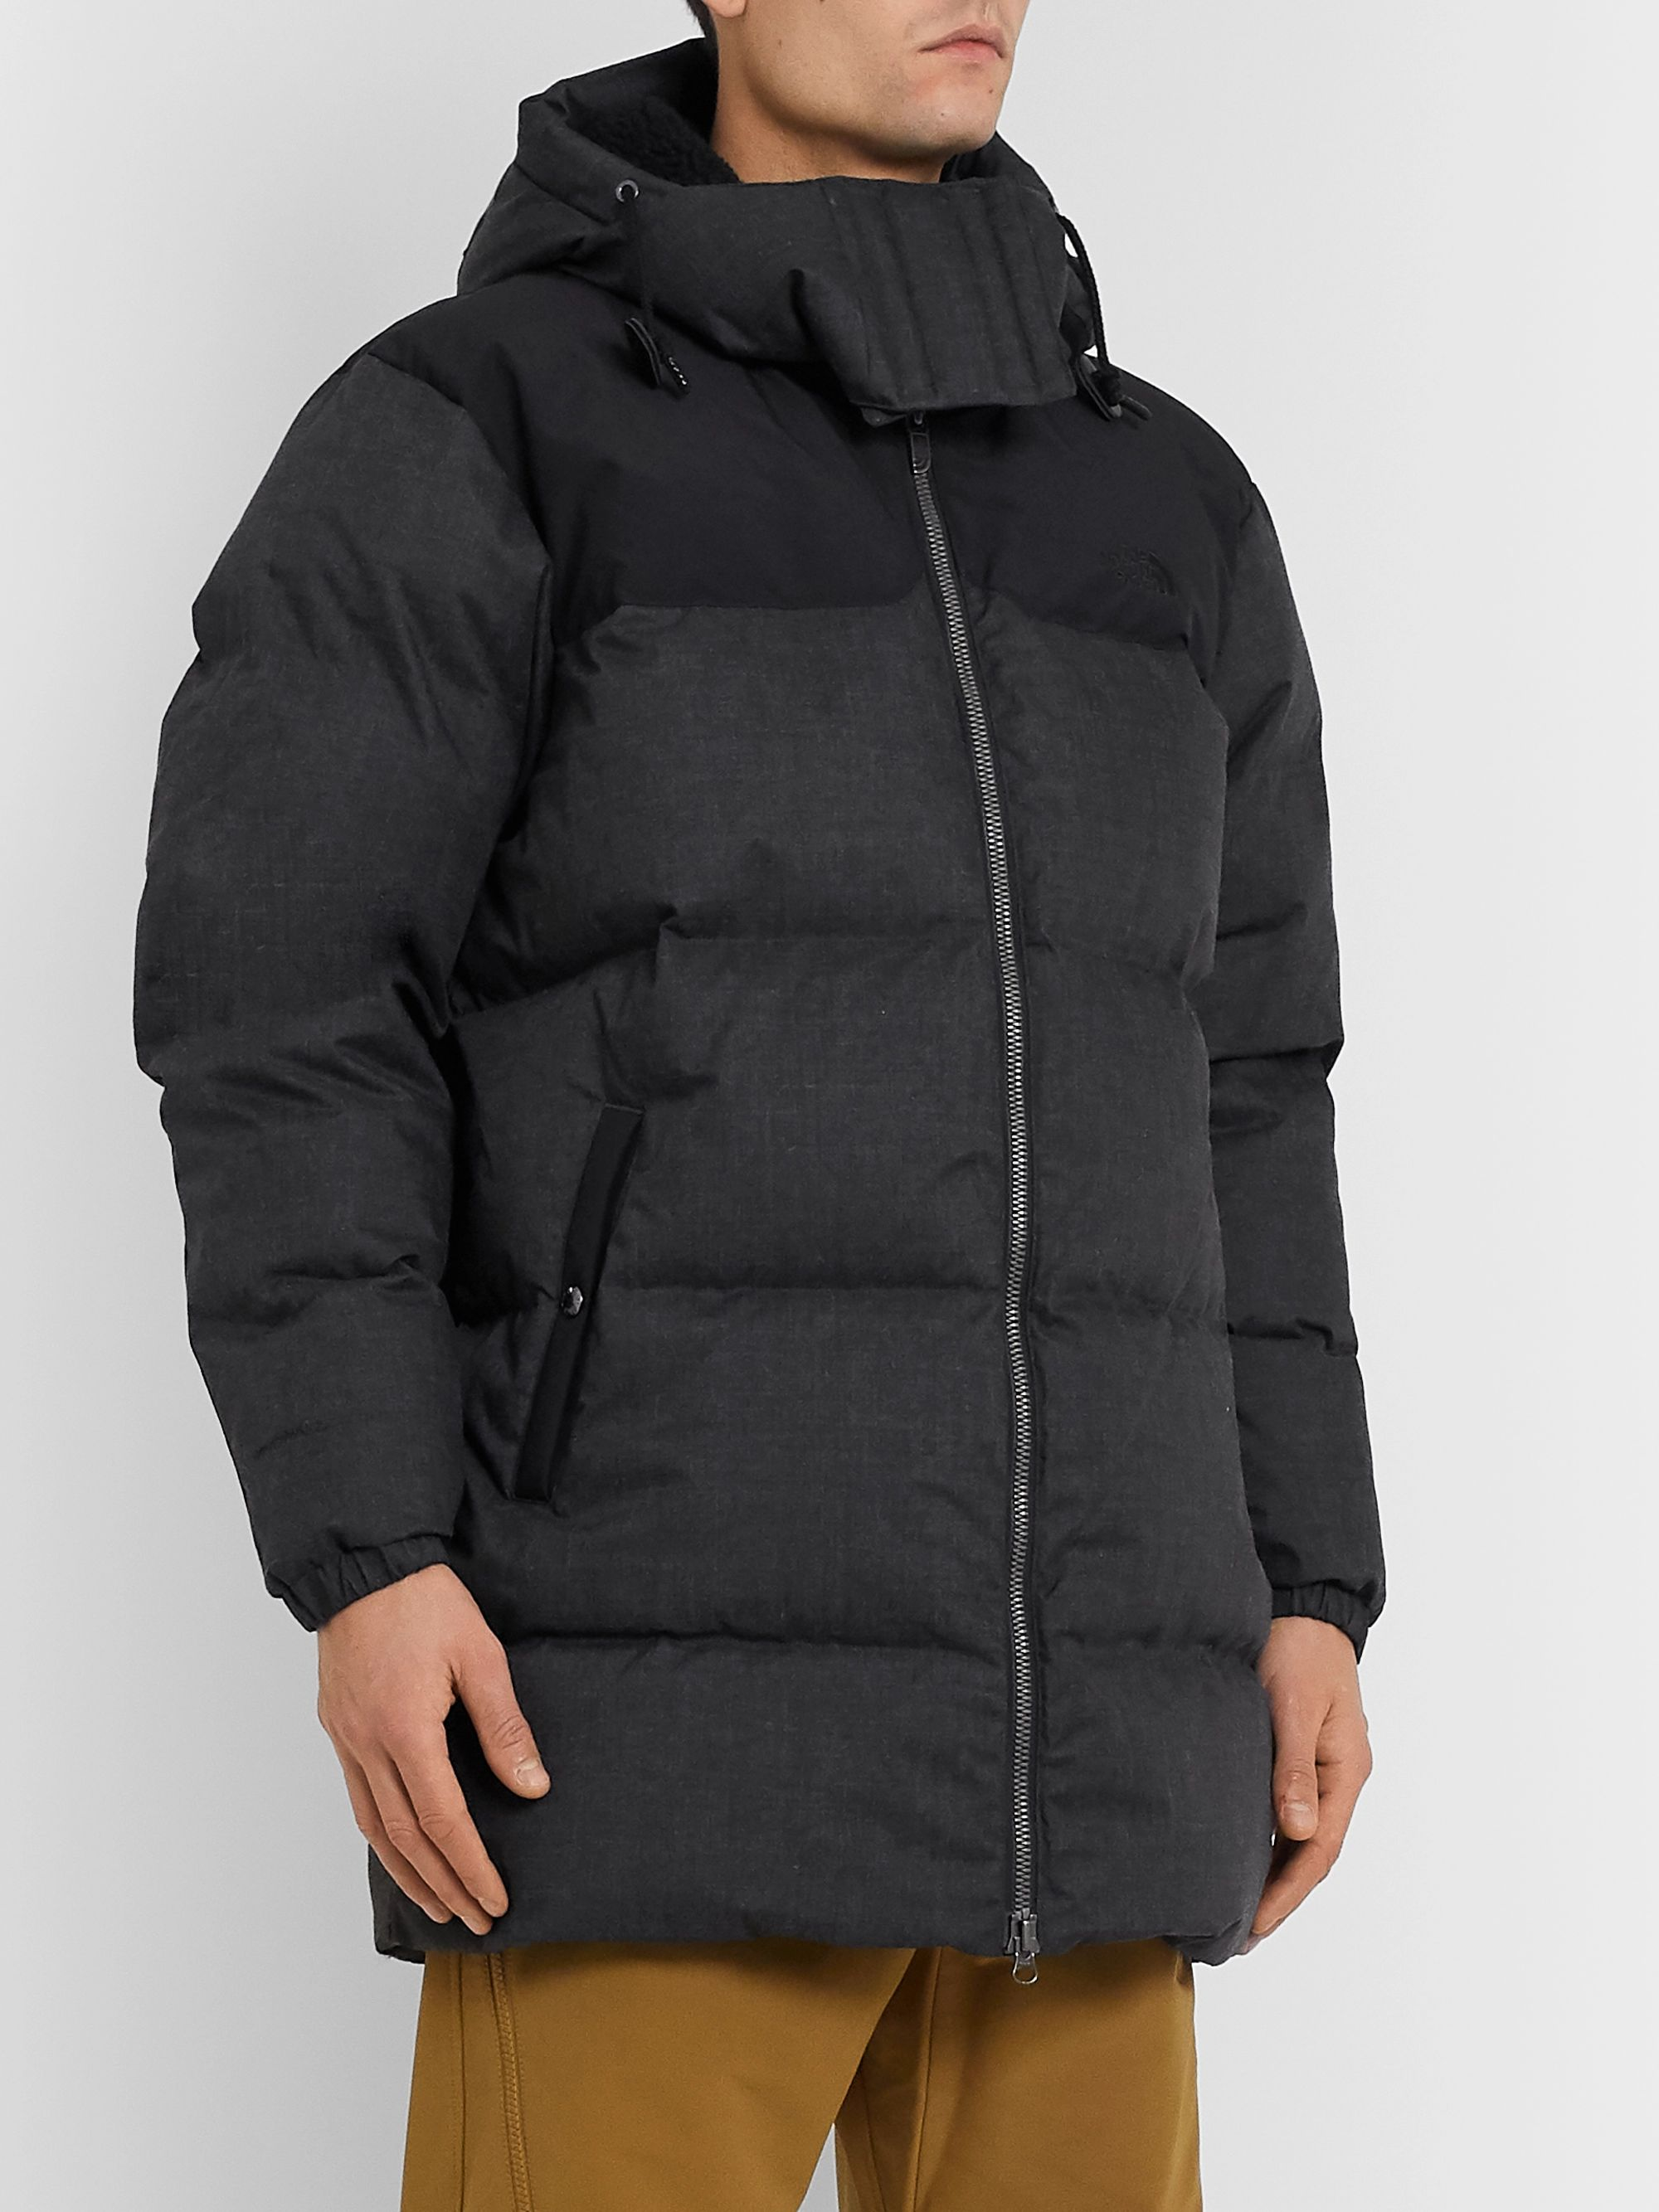 The North Face + Kazuki Kuraishi Black Series Nuptse Quilted Pertex Quantum Hooded Down Jacket